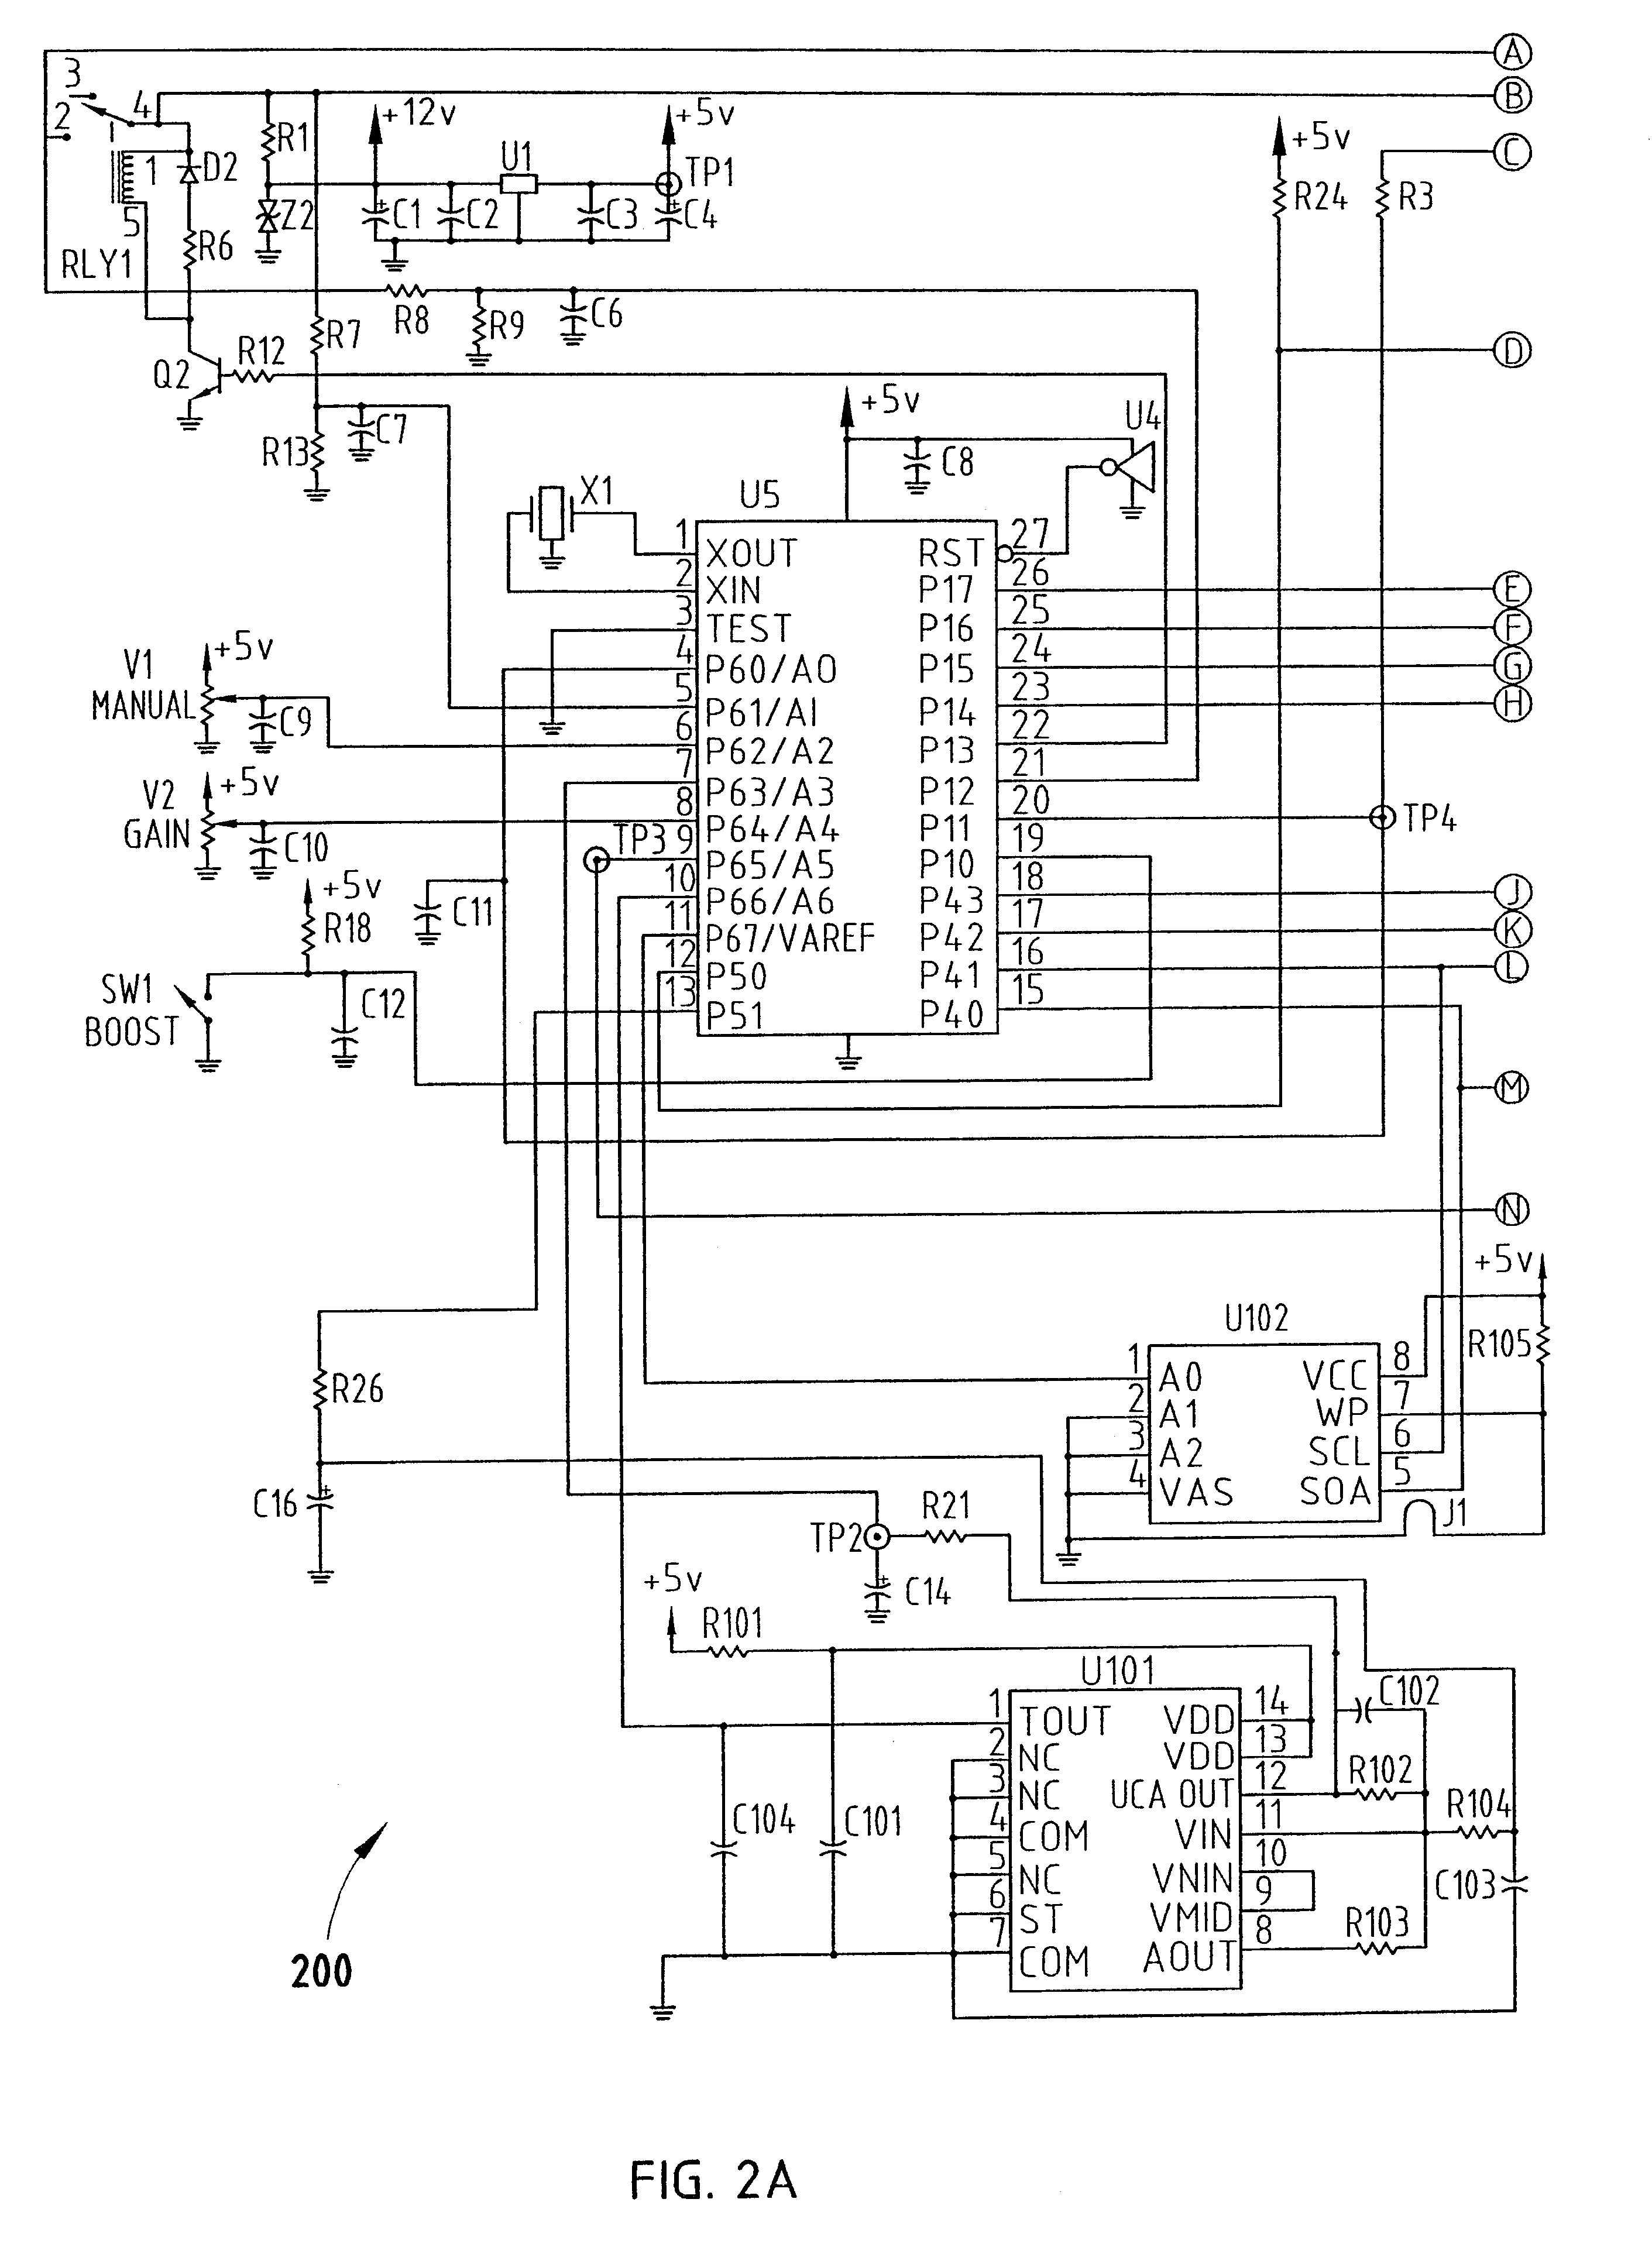 Tekonsha Voyager Wiring Diagram 01 96 Will Be A Thing P3 Brake Controller Installation To 97 Dodge